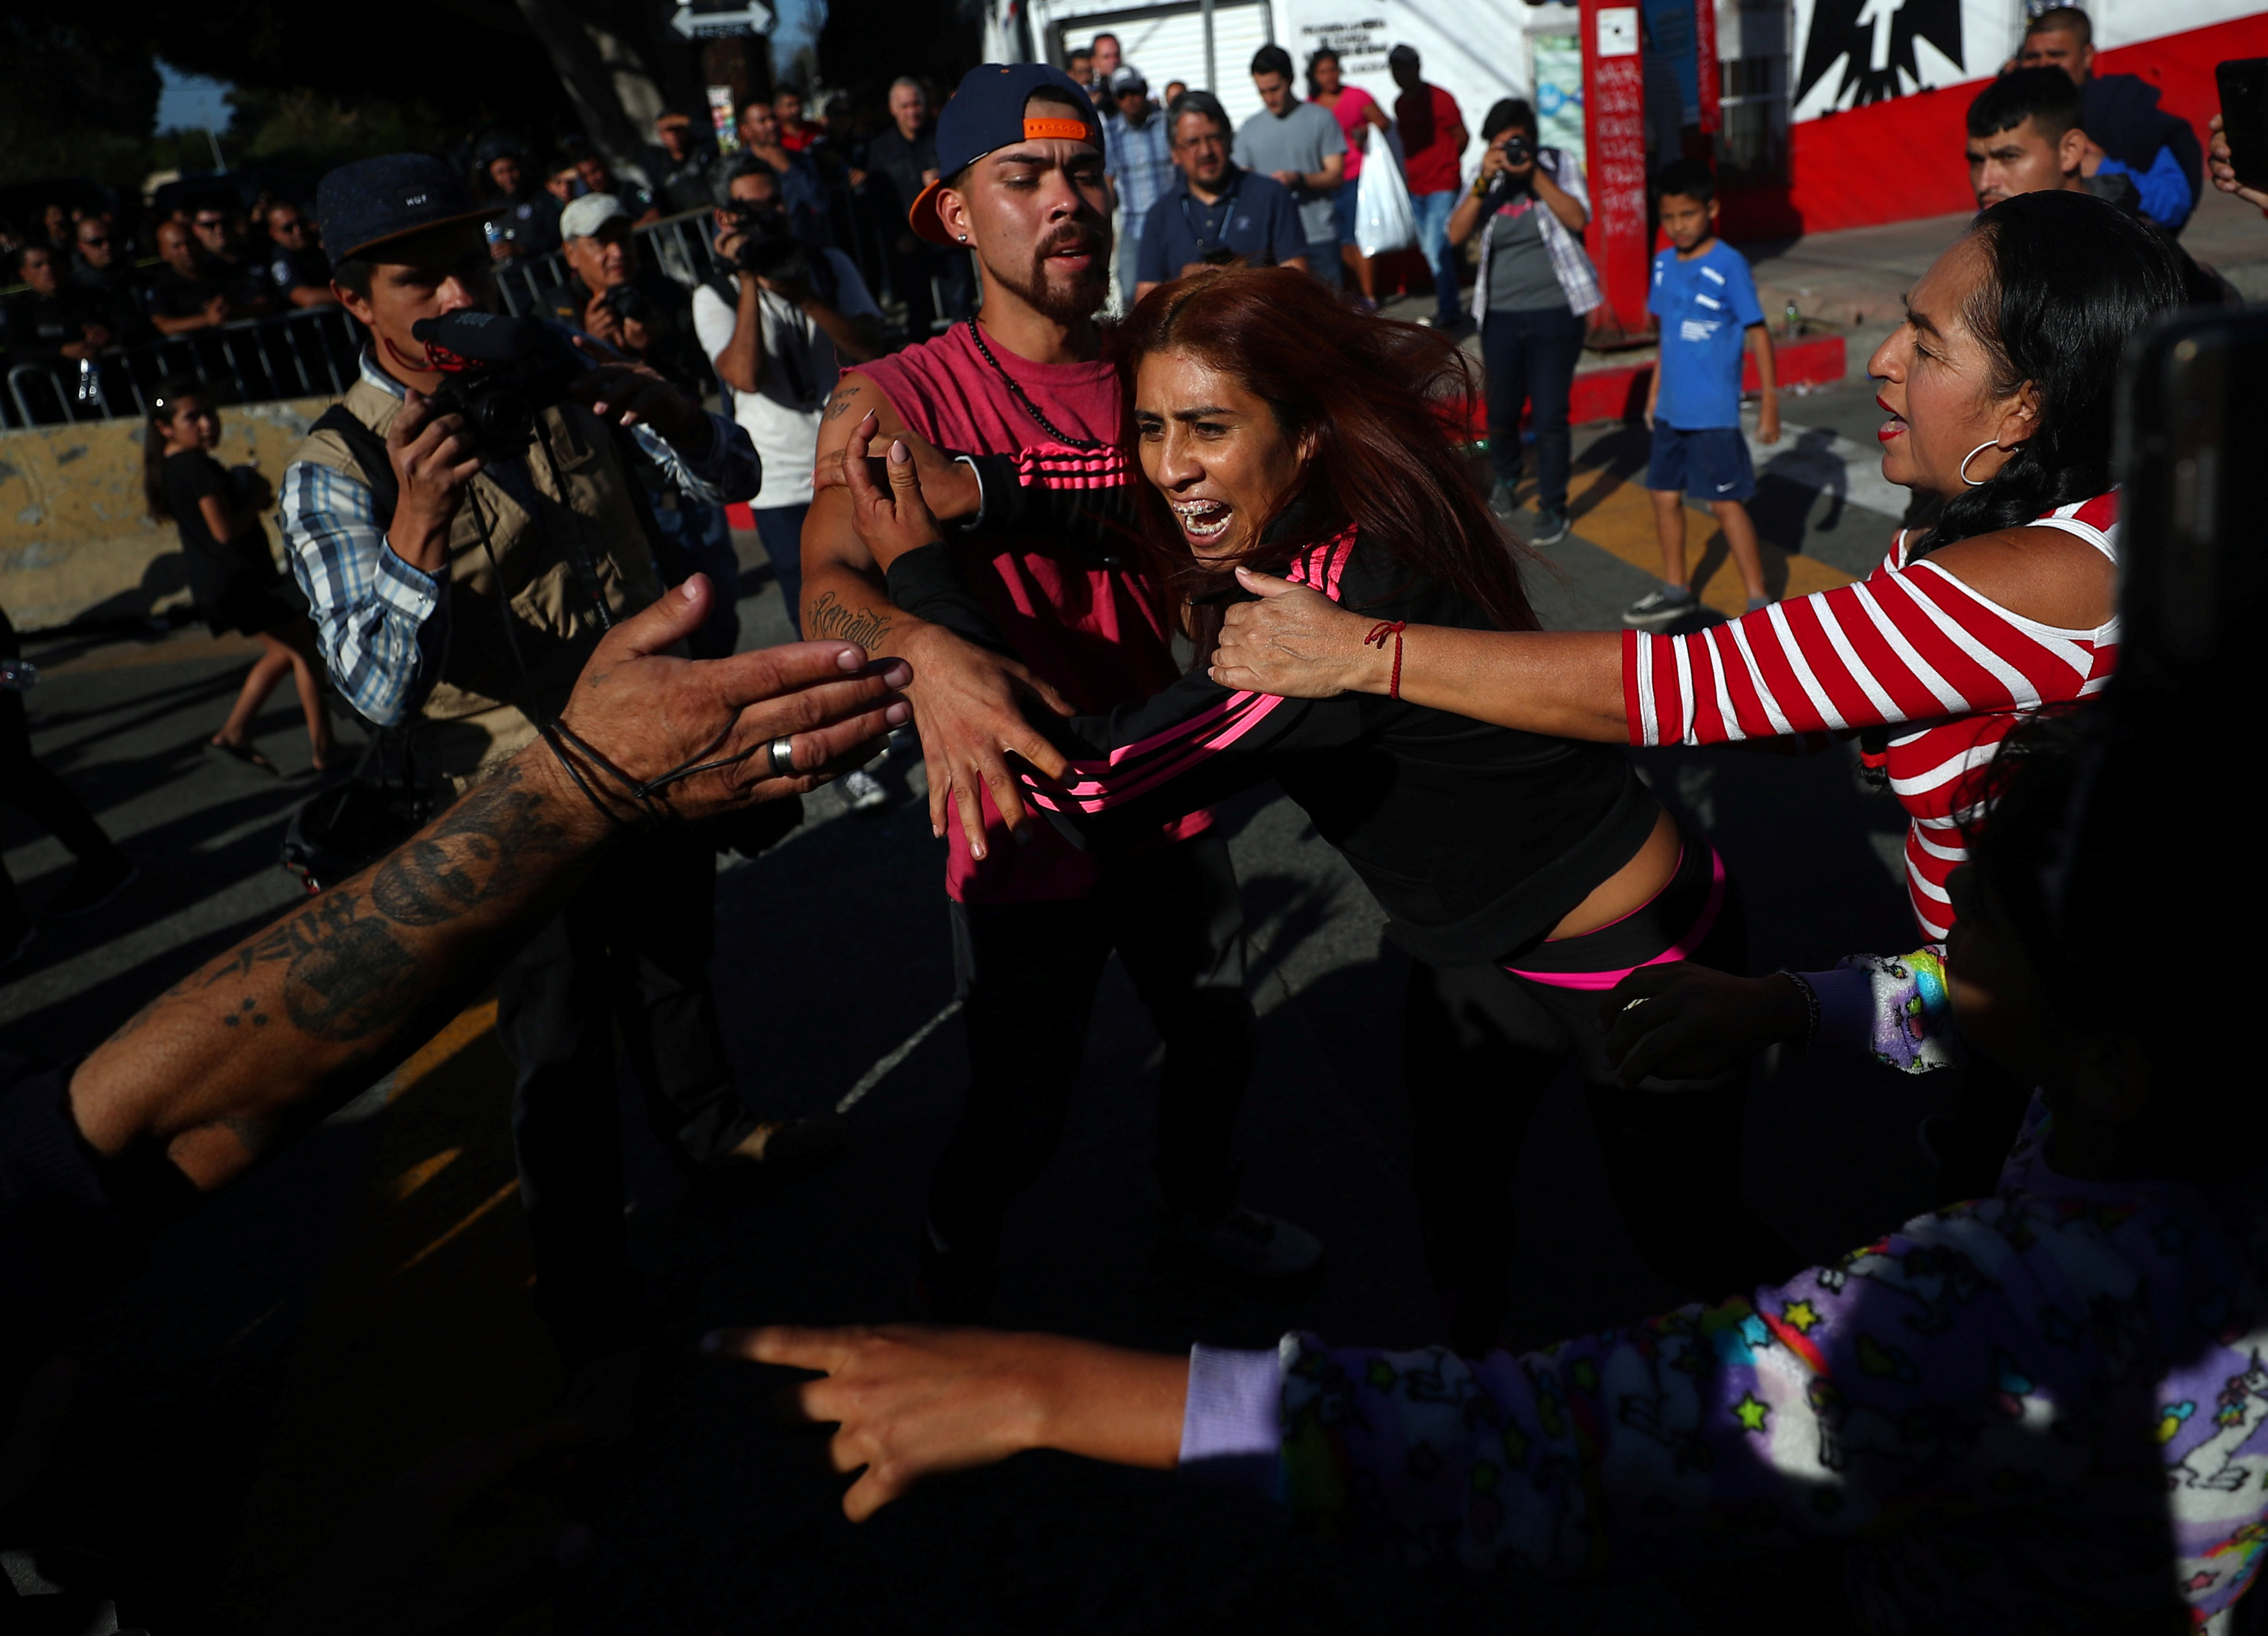 Demonstrators clash during a protest against migrants from Central America in Tijuana.